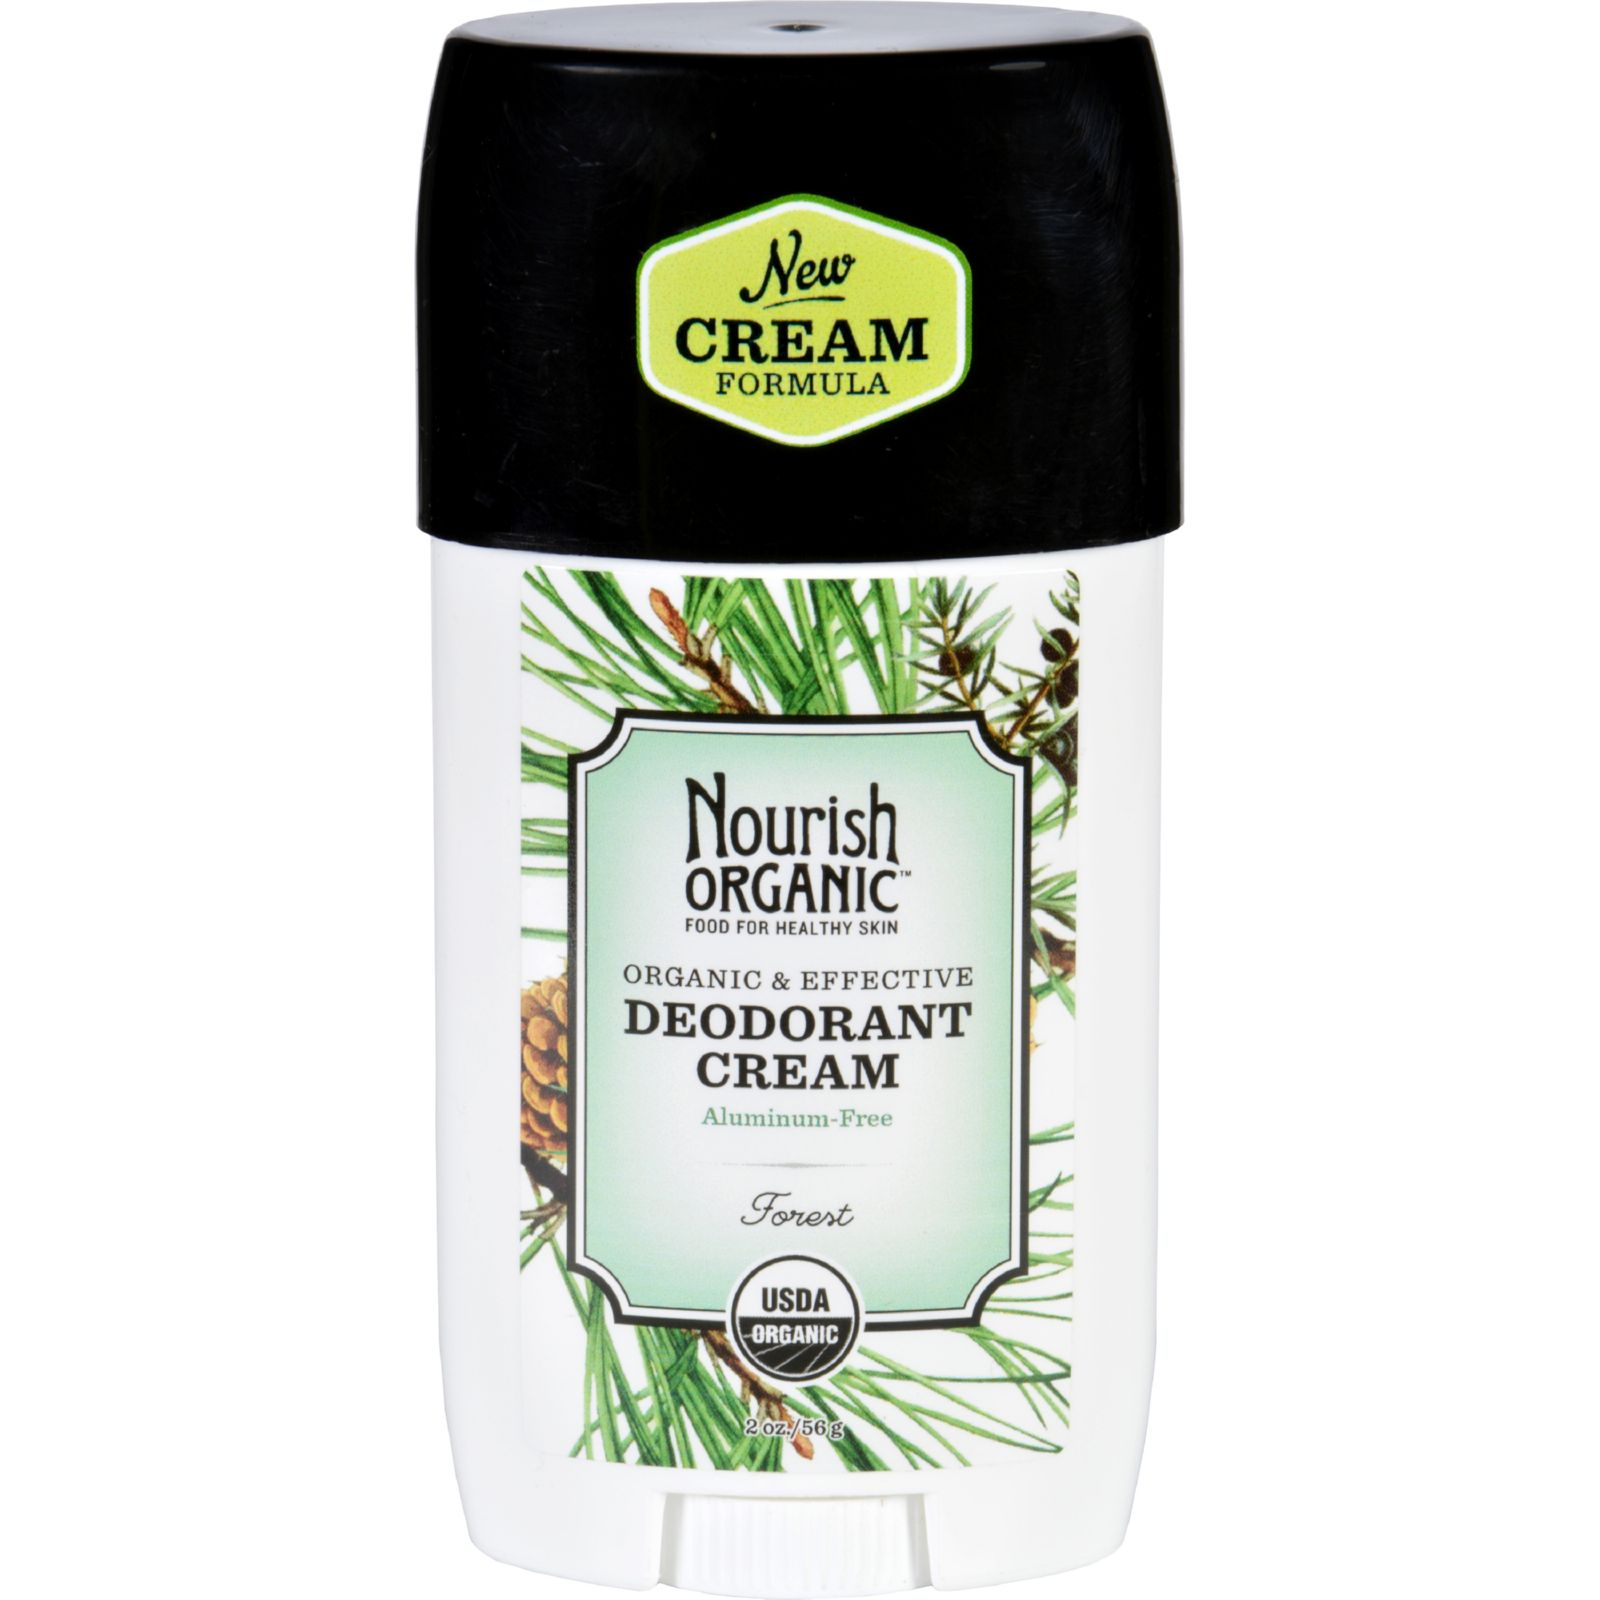 Nourish Organic Deodorant  Cream  Organic  Forest  2 oz